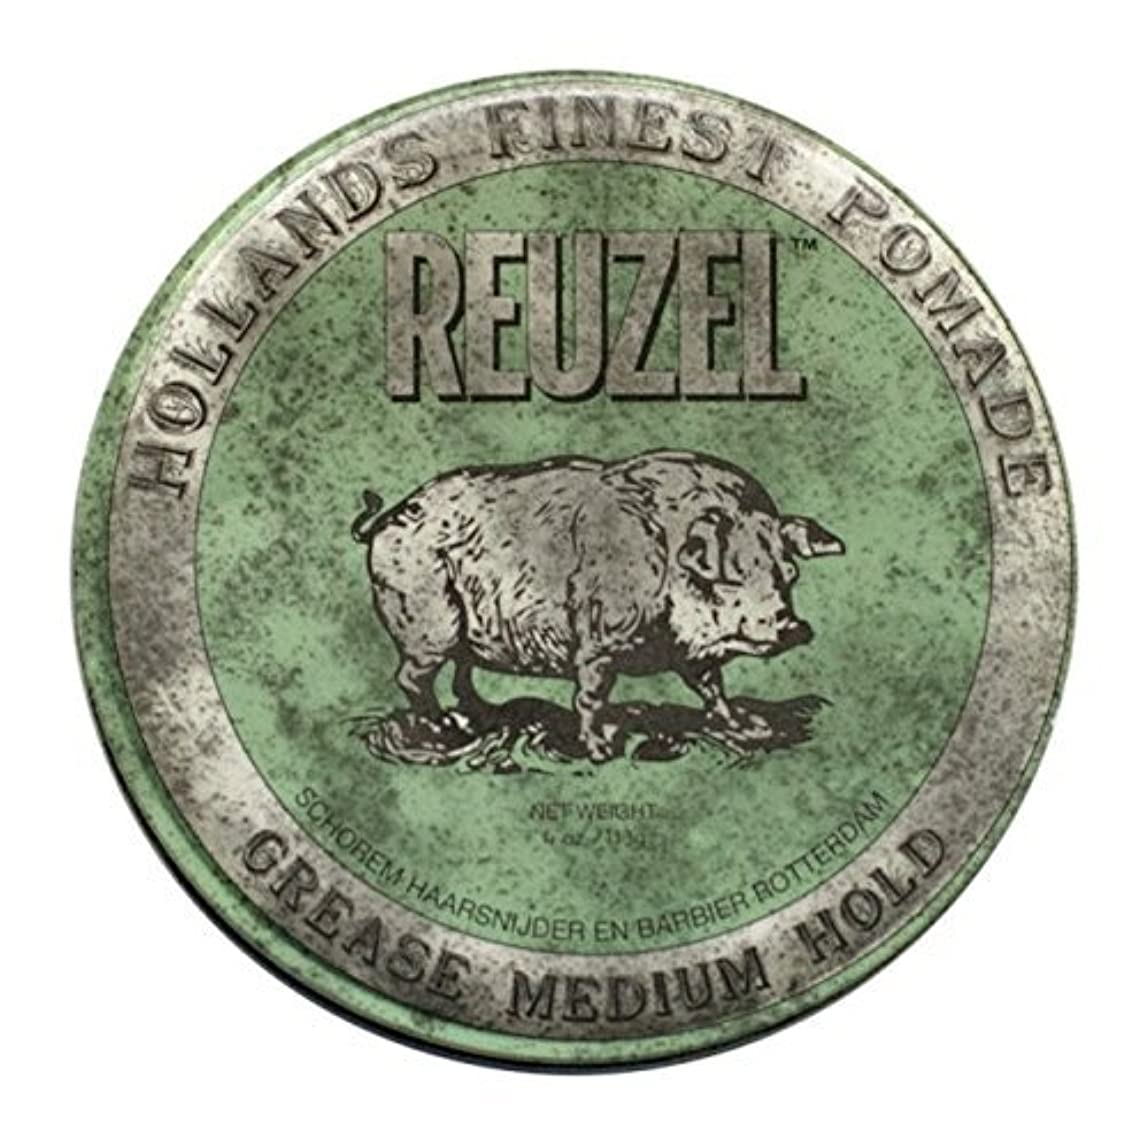 REUZEL Grease Hold Hair Styling Pomade Piglet Wax/Gel, Medium, Green, 1.3 oz, 35g [並行輸入品]